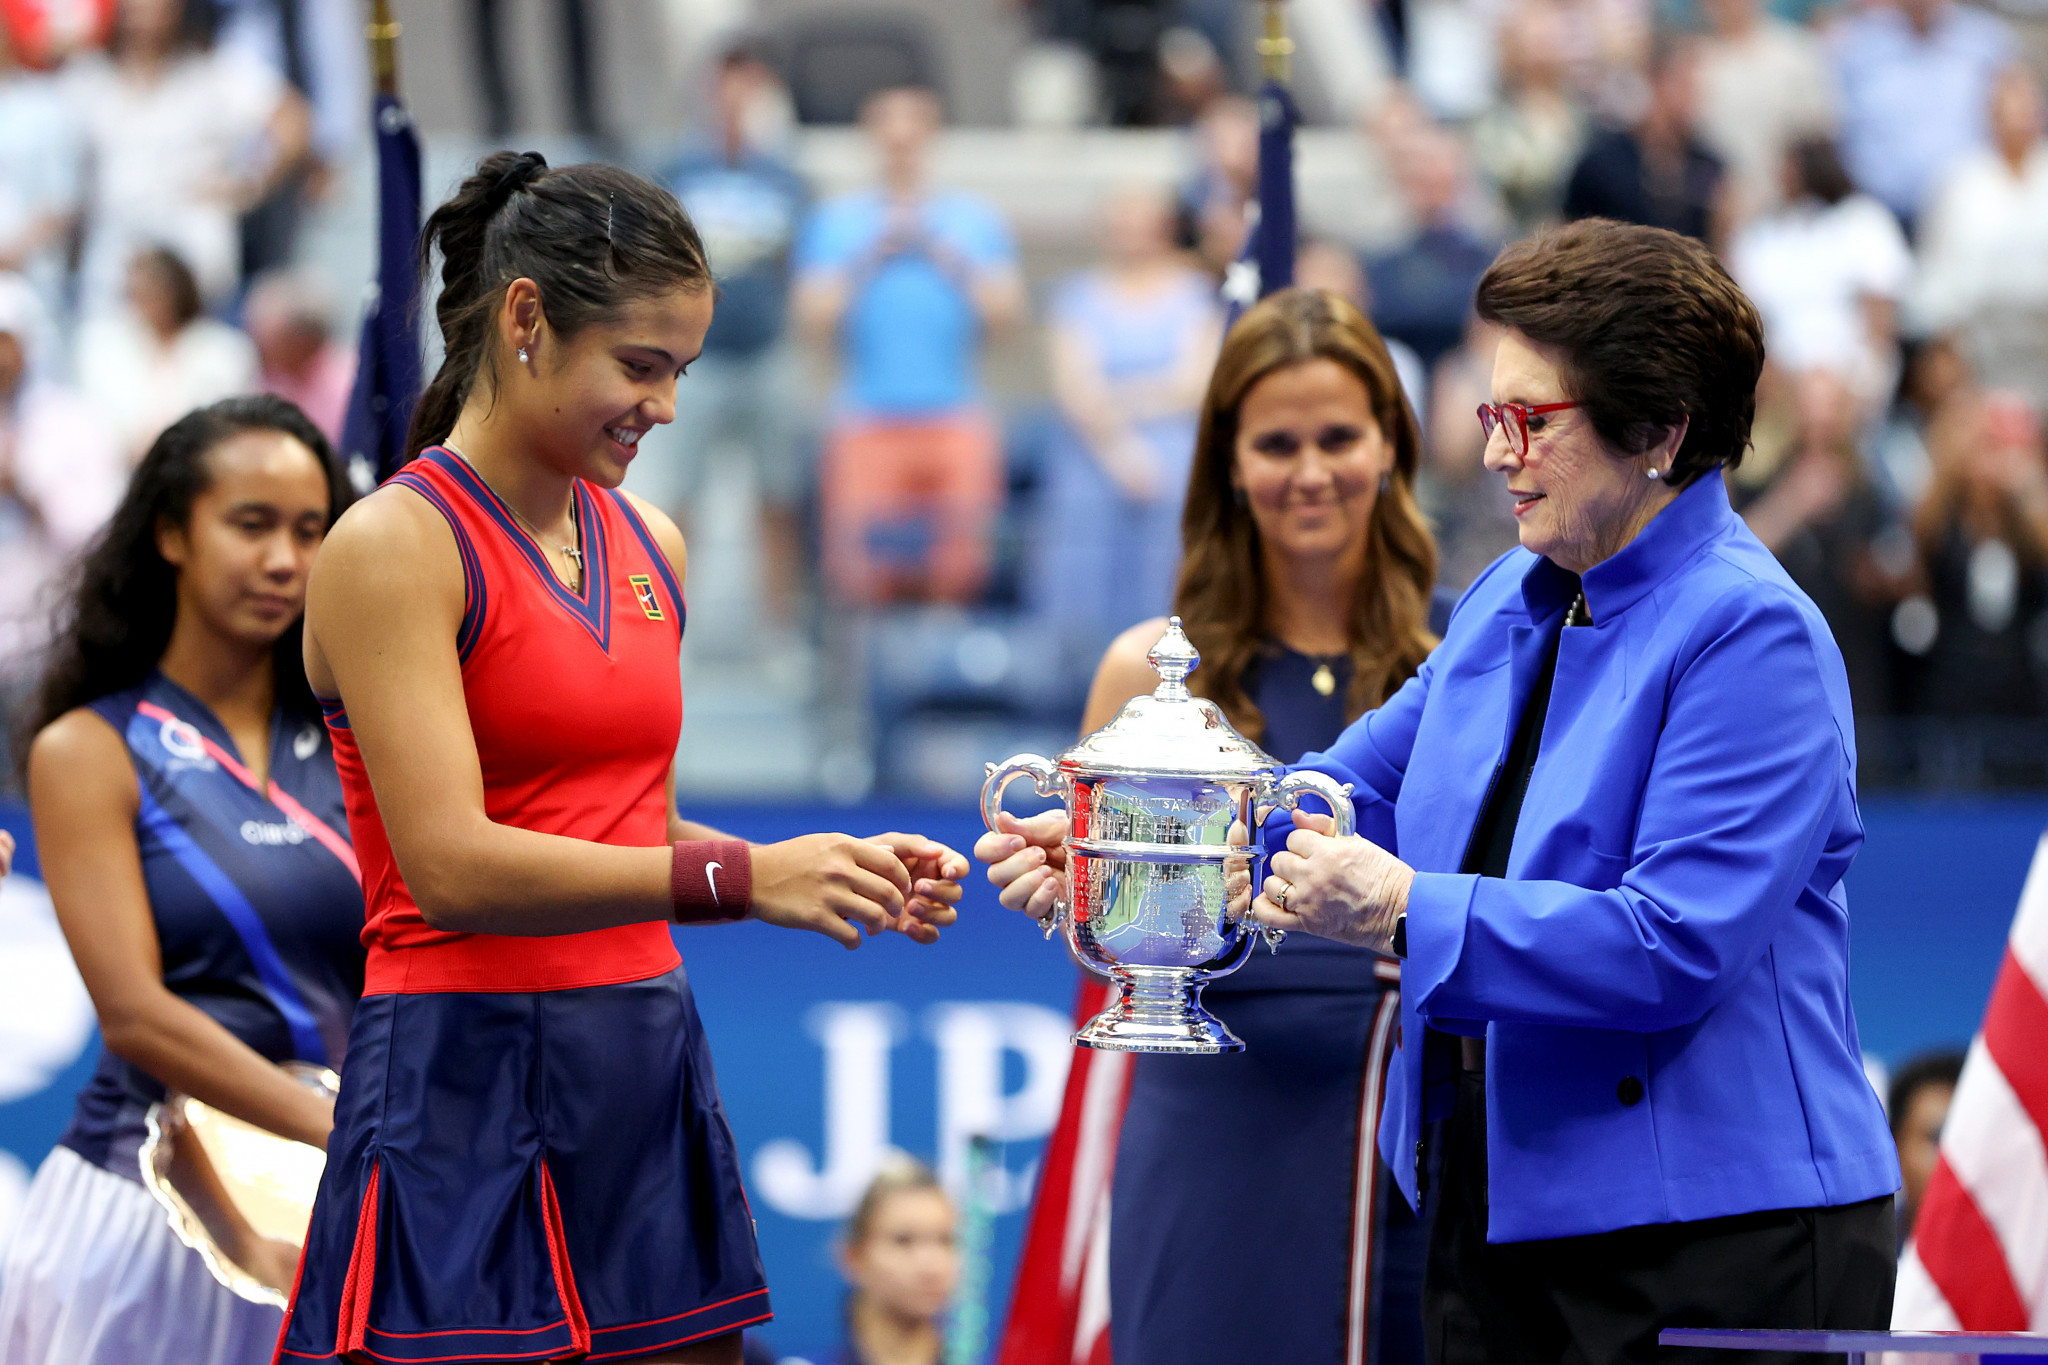 Billie Jean King presented the winner with the trophy at the Billie Jean King National Tennis Center ©Getty Images